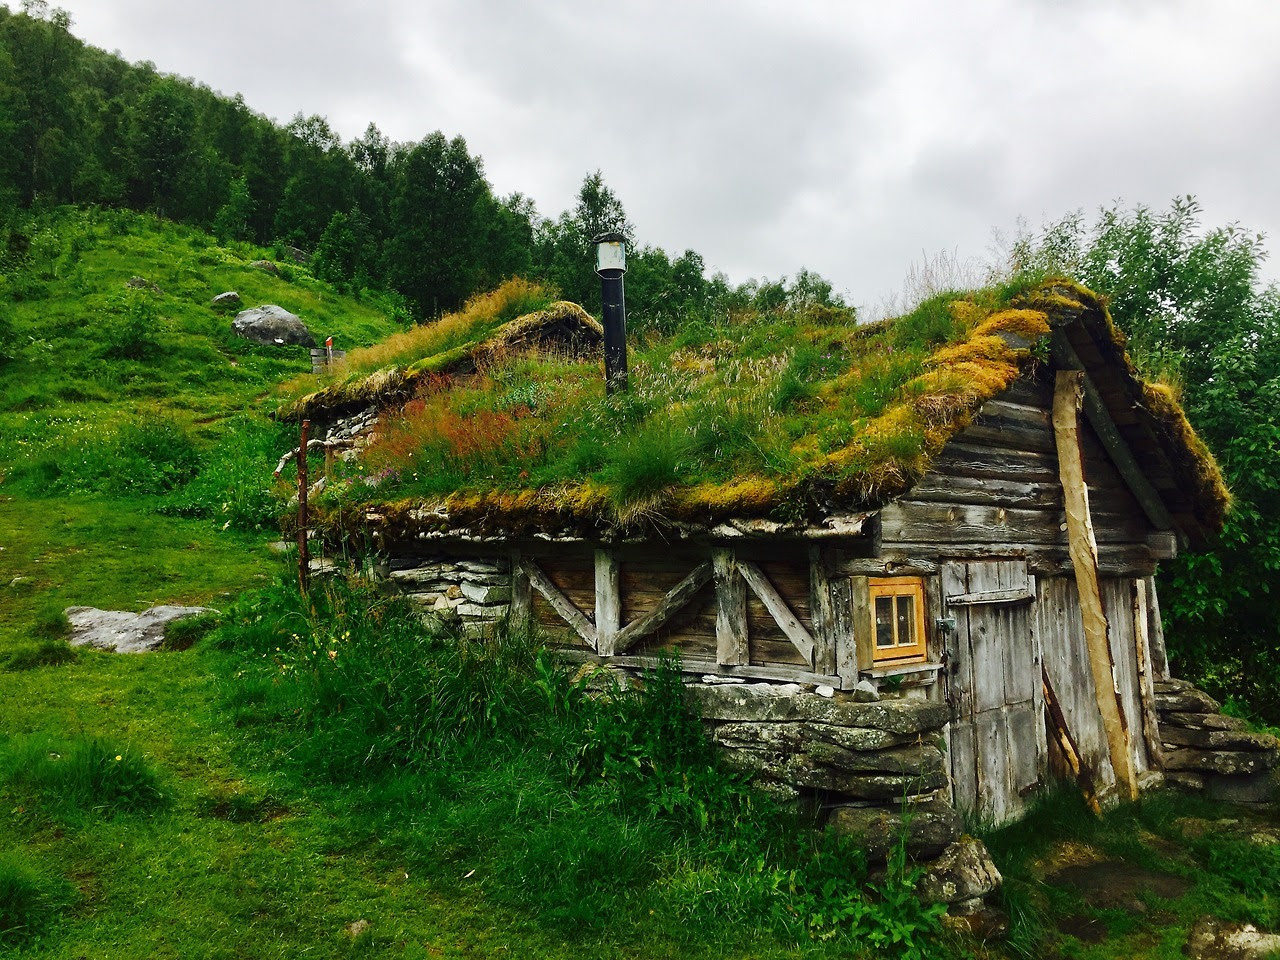 "Sunken cabin in Homlongsætra, Norway Submitted by Joseph Johnston ""I took this photo on a Geiranger Fjord hike in Norway. We took a Fjord cruise that dropped us off at the trail on the way back. We hiked up the cliff to a couple farms at Skageflå and..."